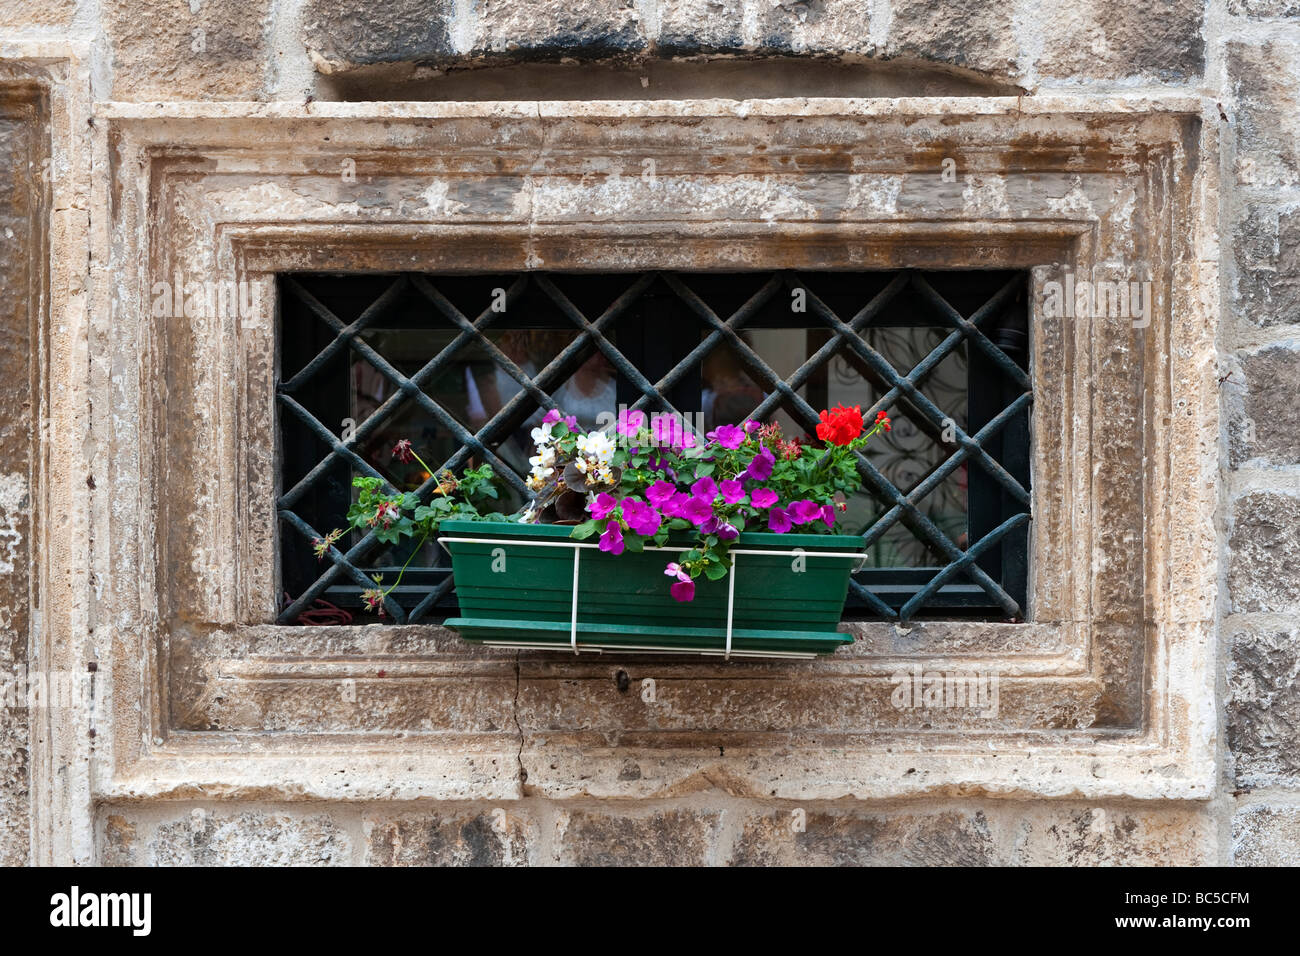 Flowers in a window box in the old walled city of Dubrovnik, Croatia - Stock Image